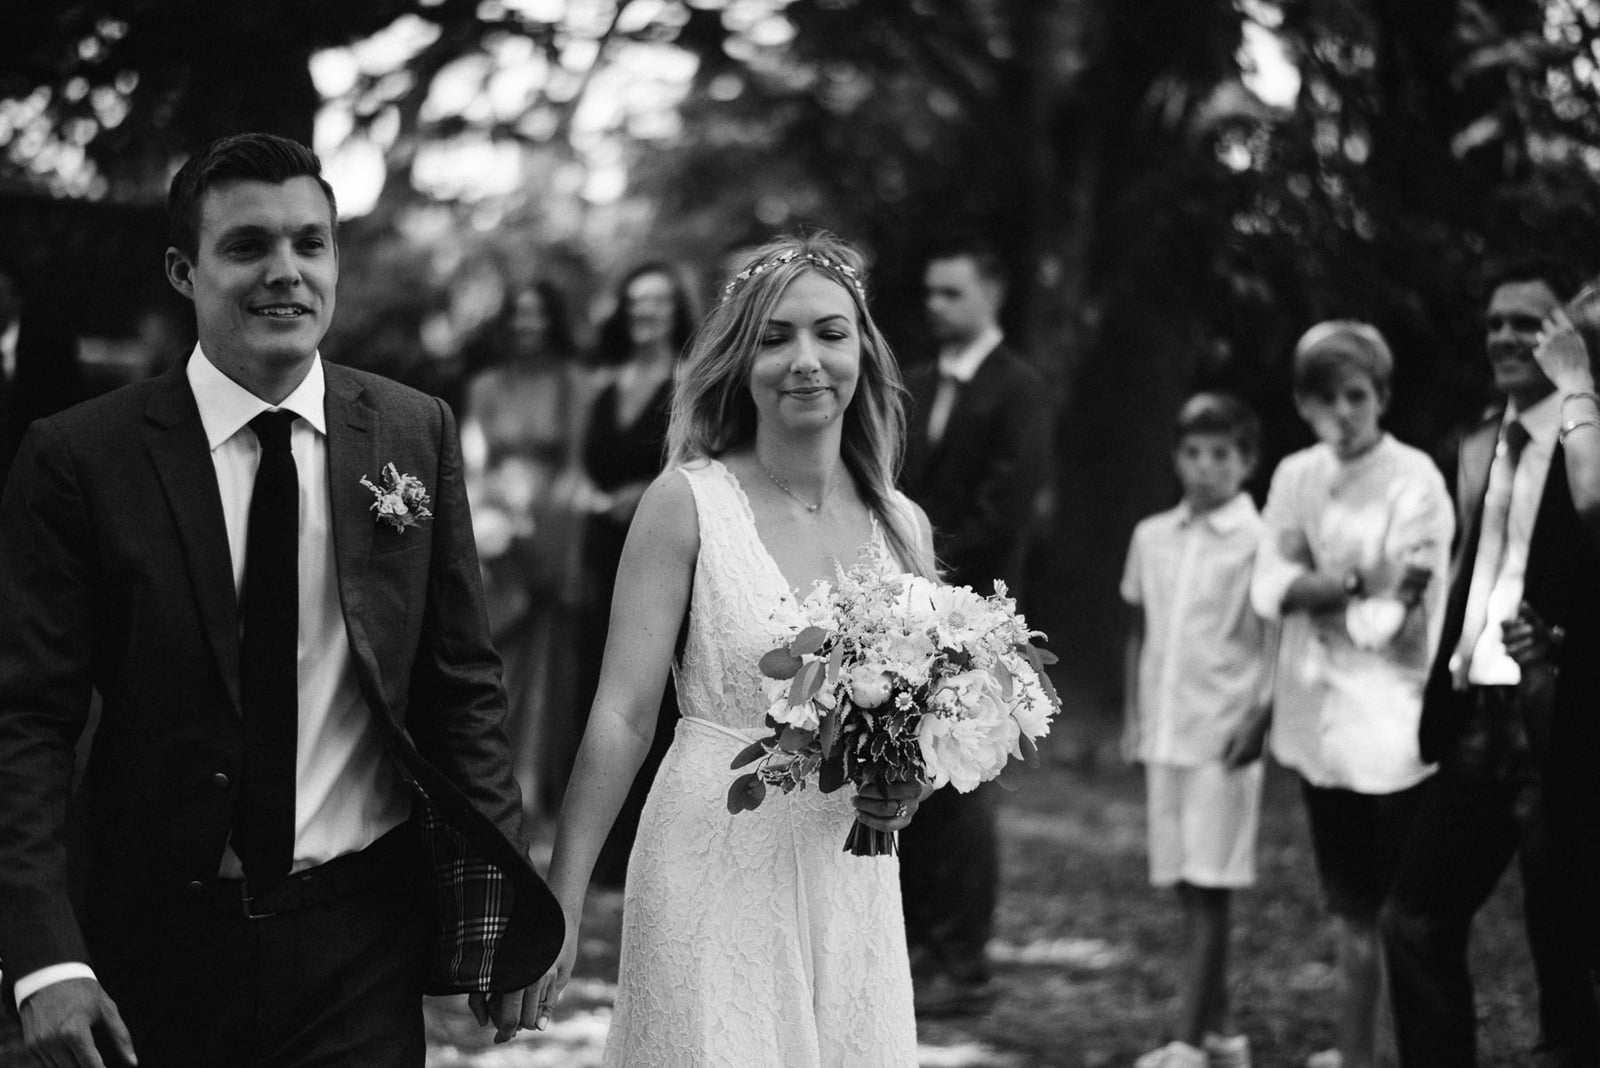 A+L Wedding at Montechiaro, Siena by Federico Pannacci 62